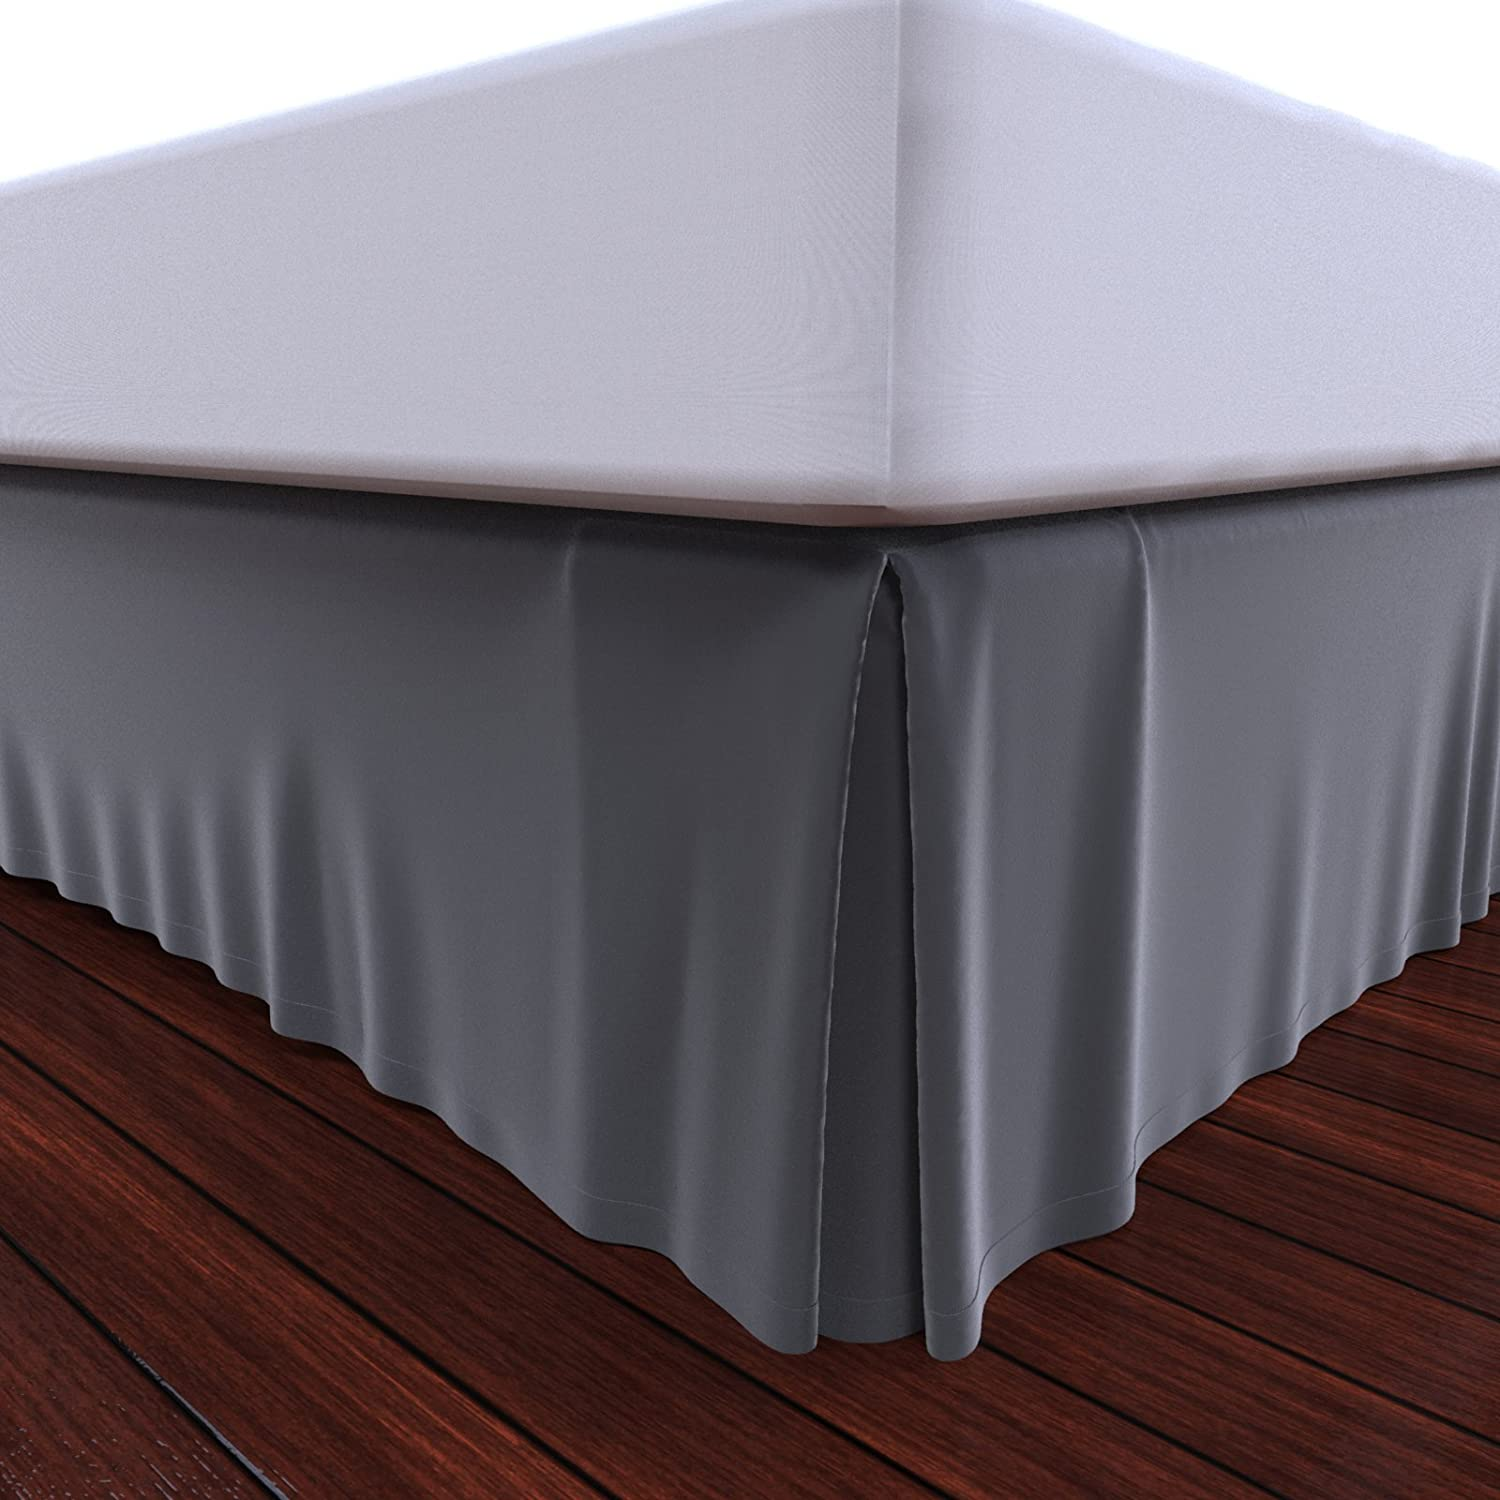 Royal Bed Skirt by 100% Natural Cotton - Luxurious 4 Side Pleated Skirt that is Durable and Easy to Wash (Full, White) FBA_B014ZXLHUO